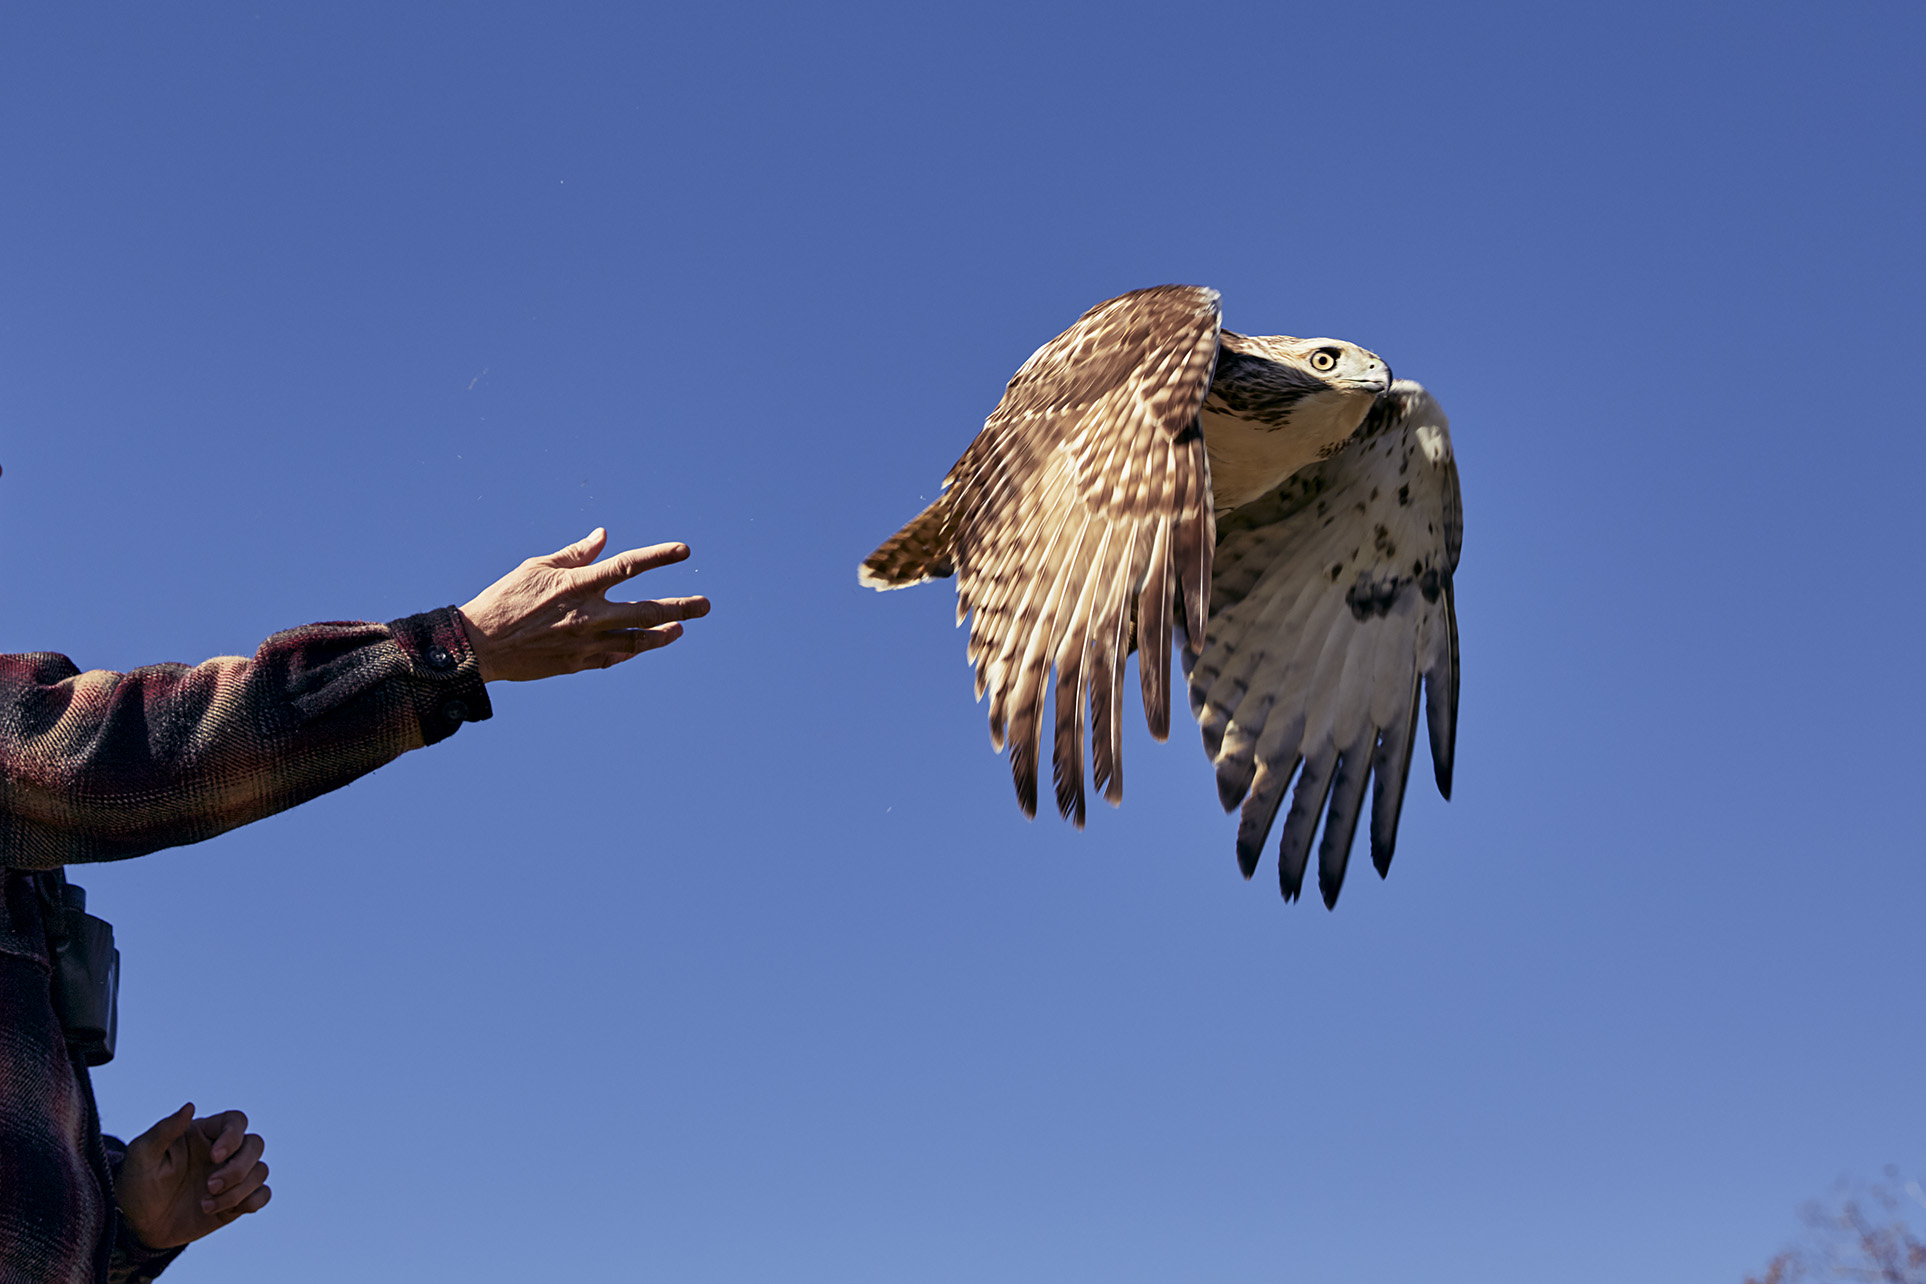 Scott McNeff releases a red-tailed hawk that was captured, banded, and released. This banding information goes into a national database used in part to monitor avian populations.